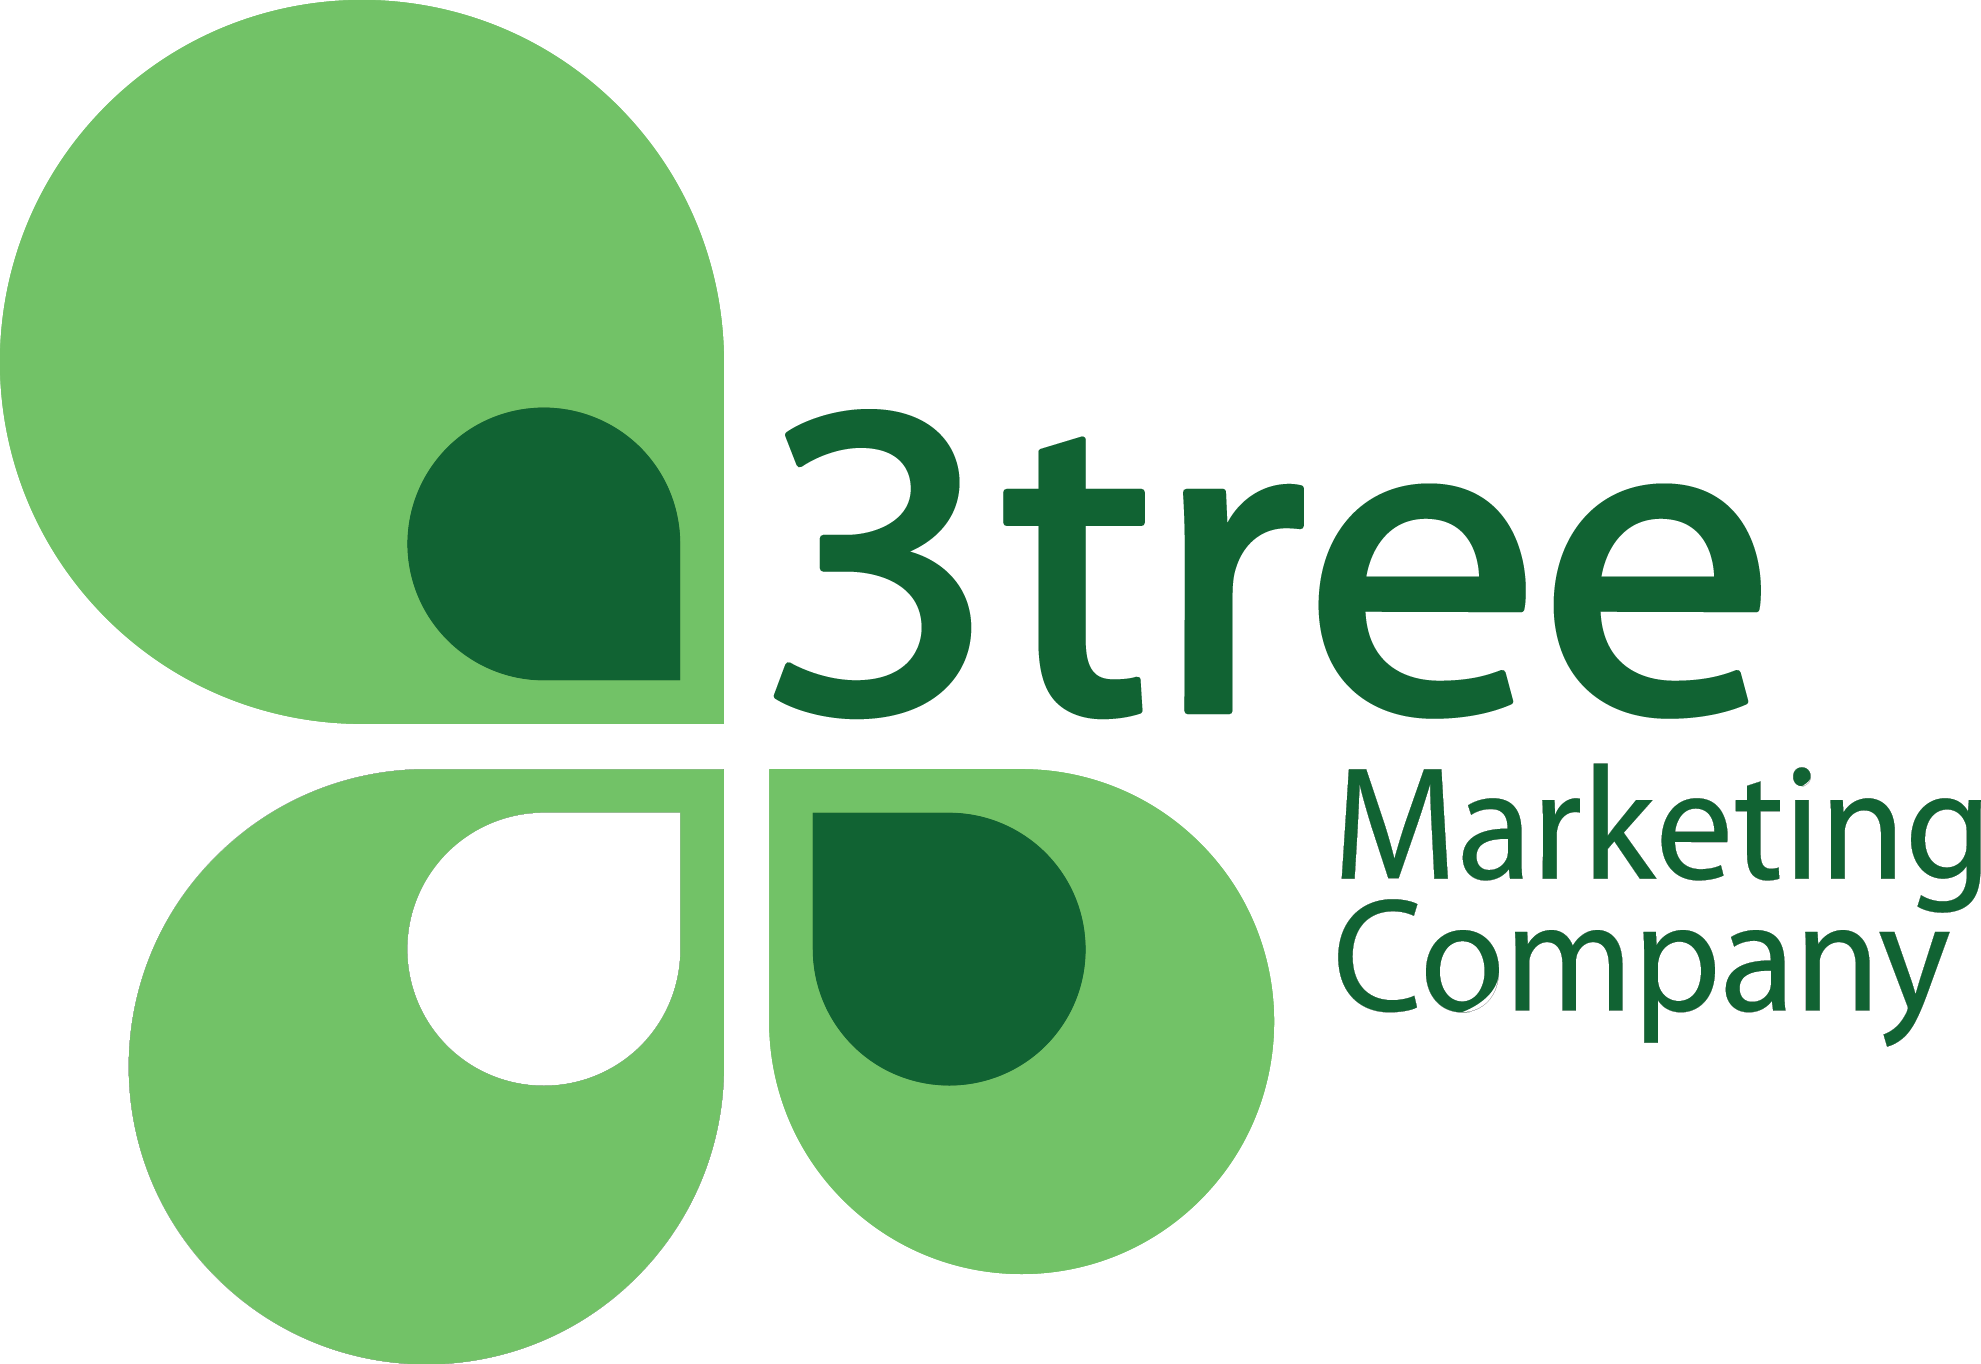 3Tree Marketing Logo